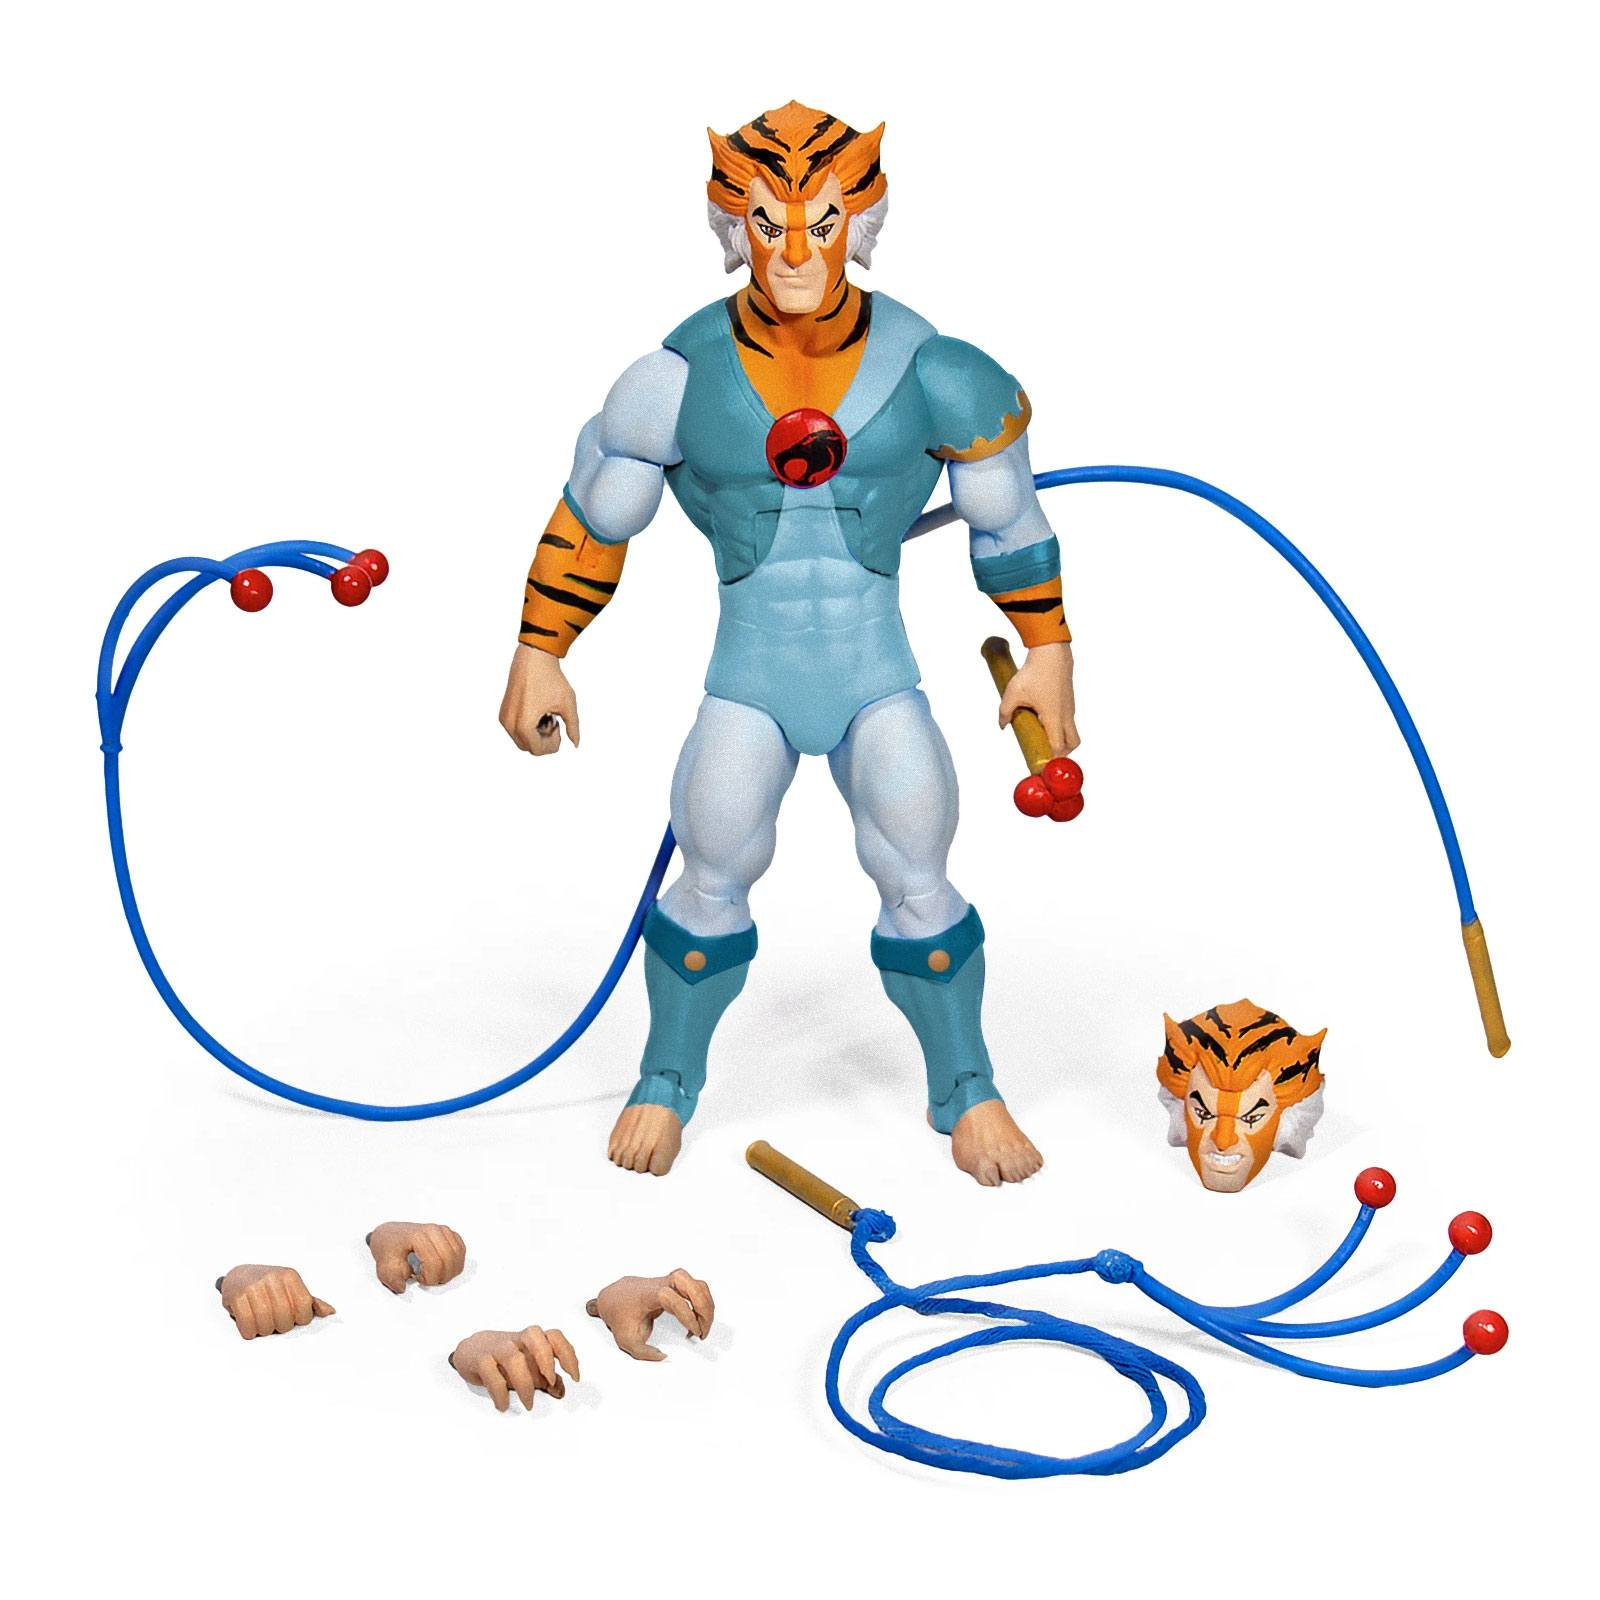 *PREORDER* Thundercats Ultimates Action Figure: TYGRA - THE SCIENTIST WARRIOR by Super7